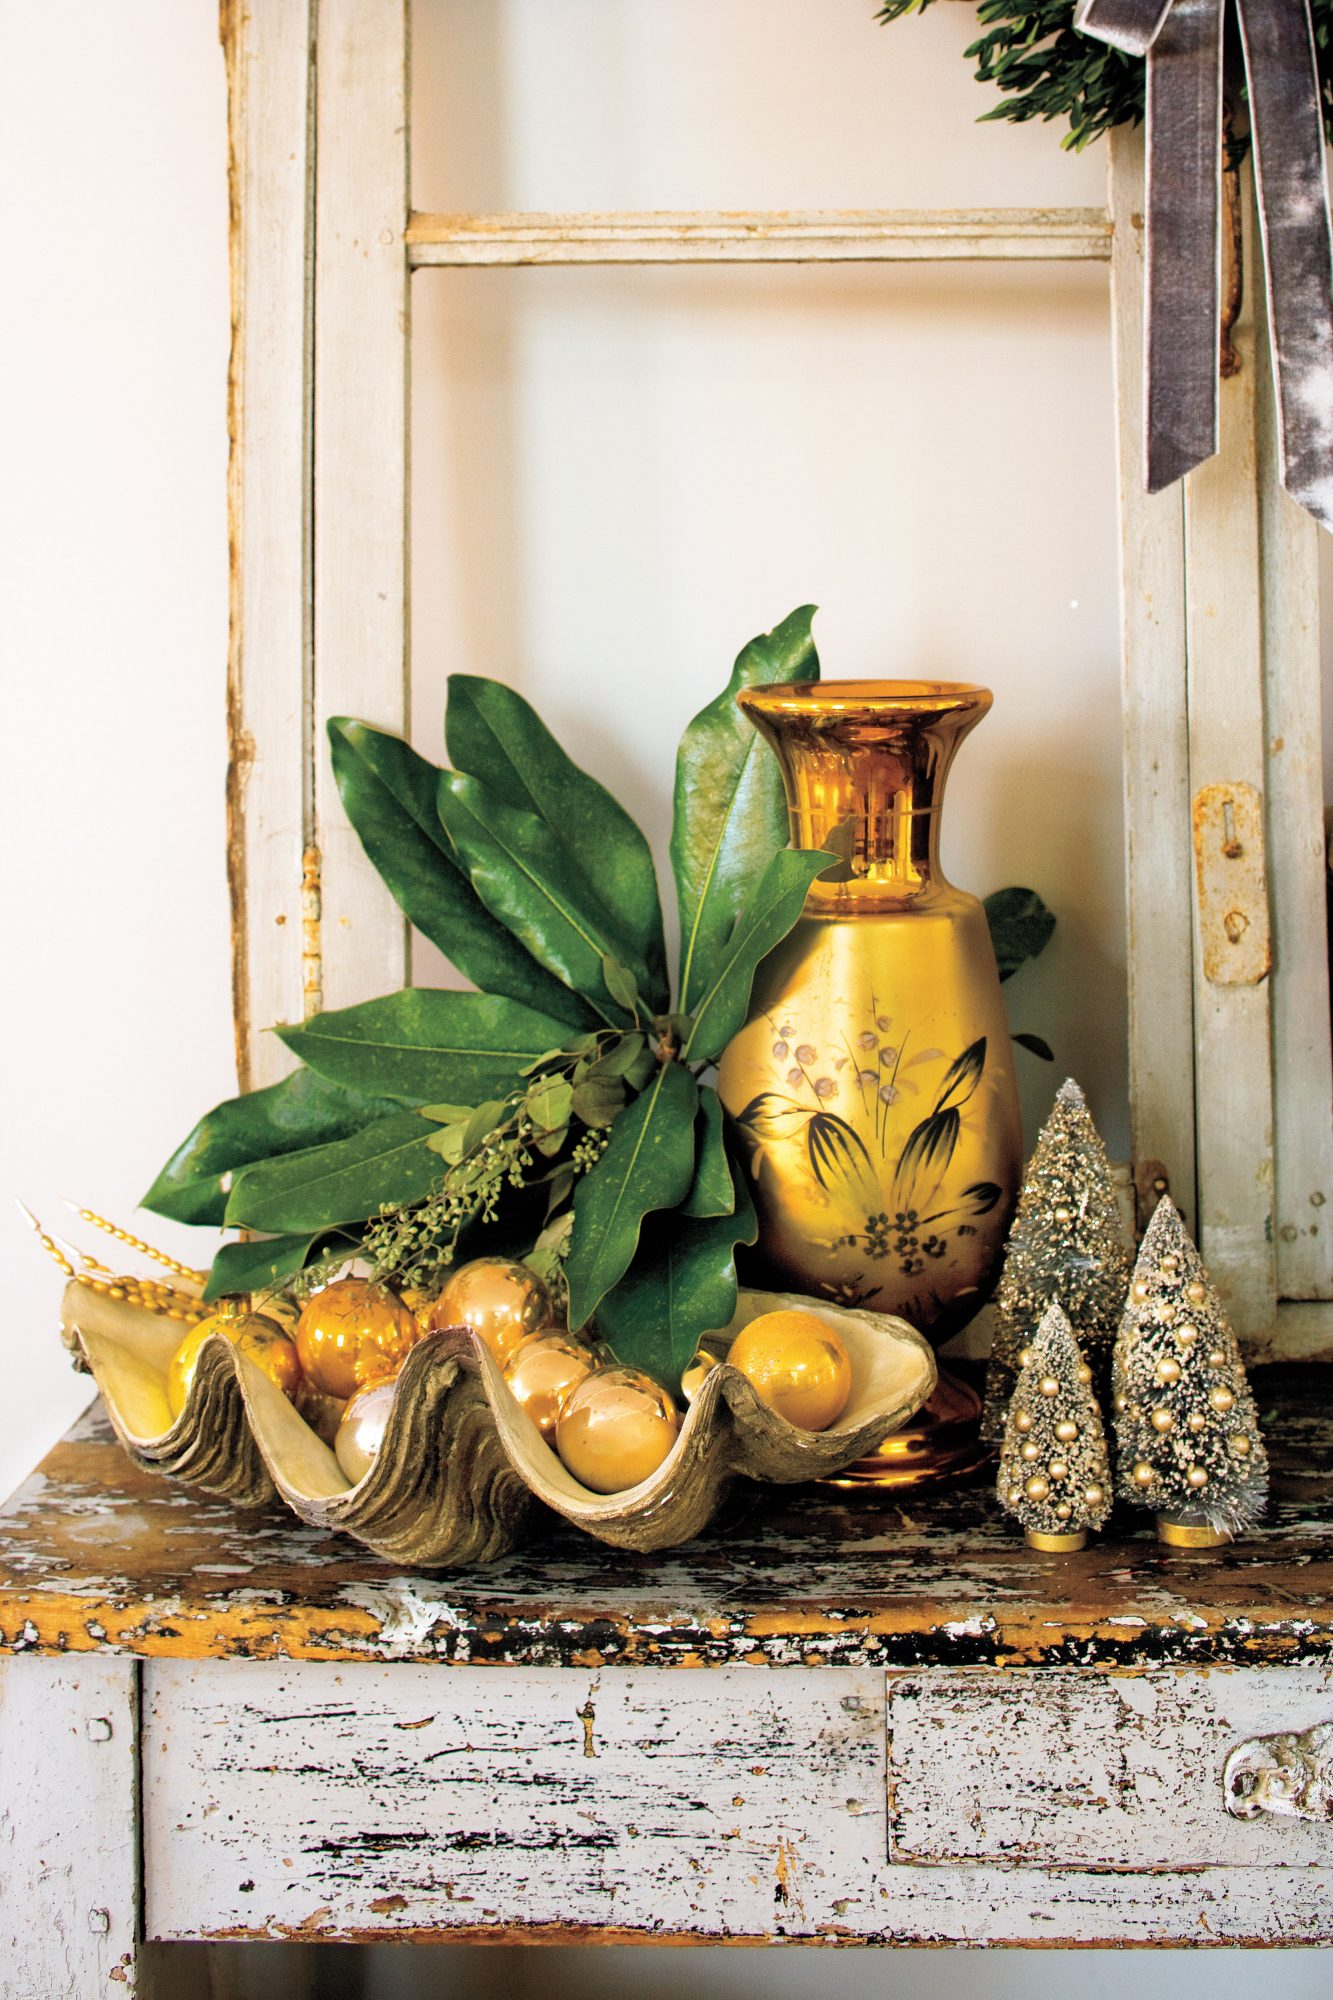 Vintage Christmas Decorations: Mix Metallics with Evergreens